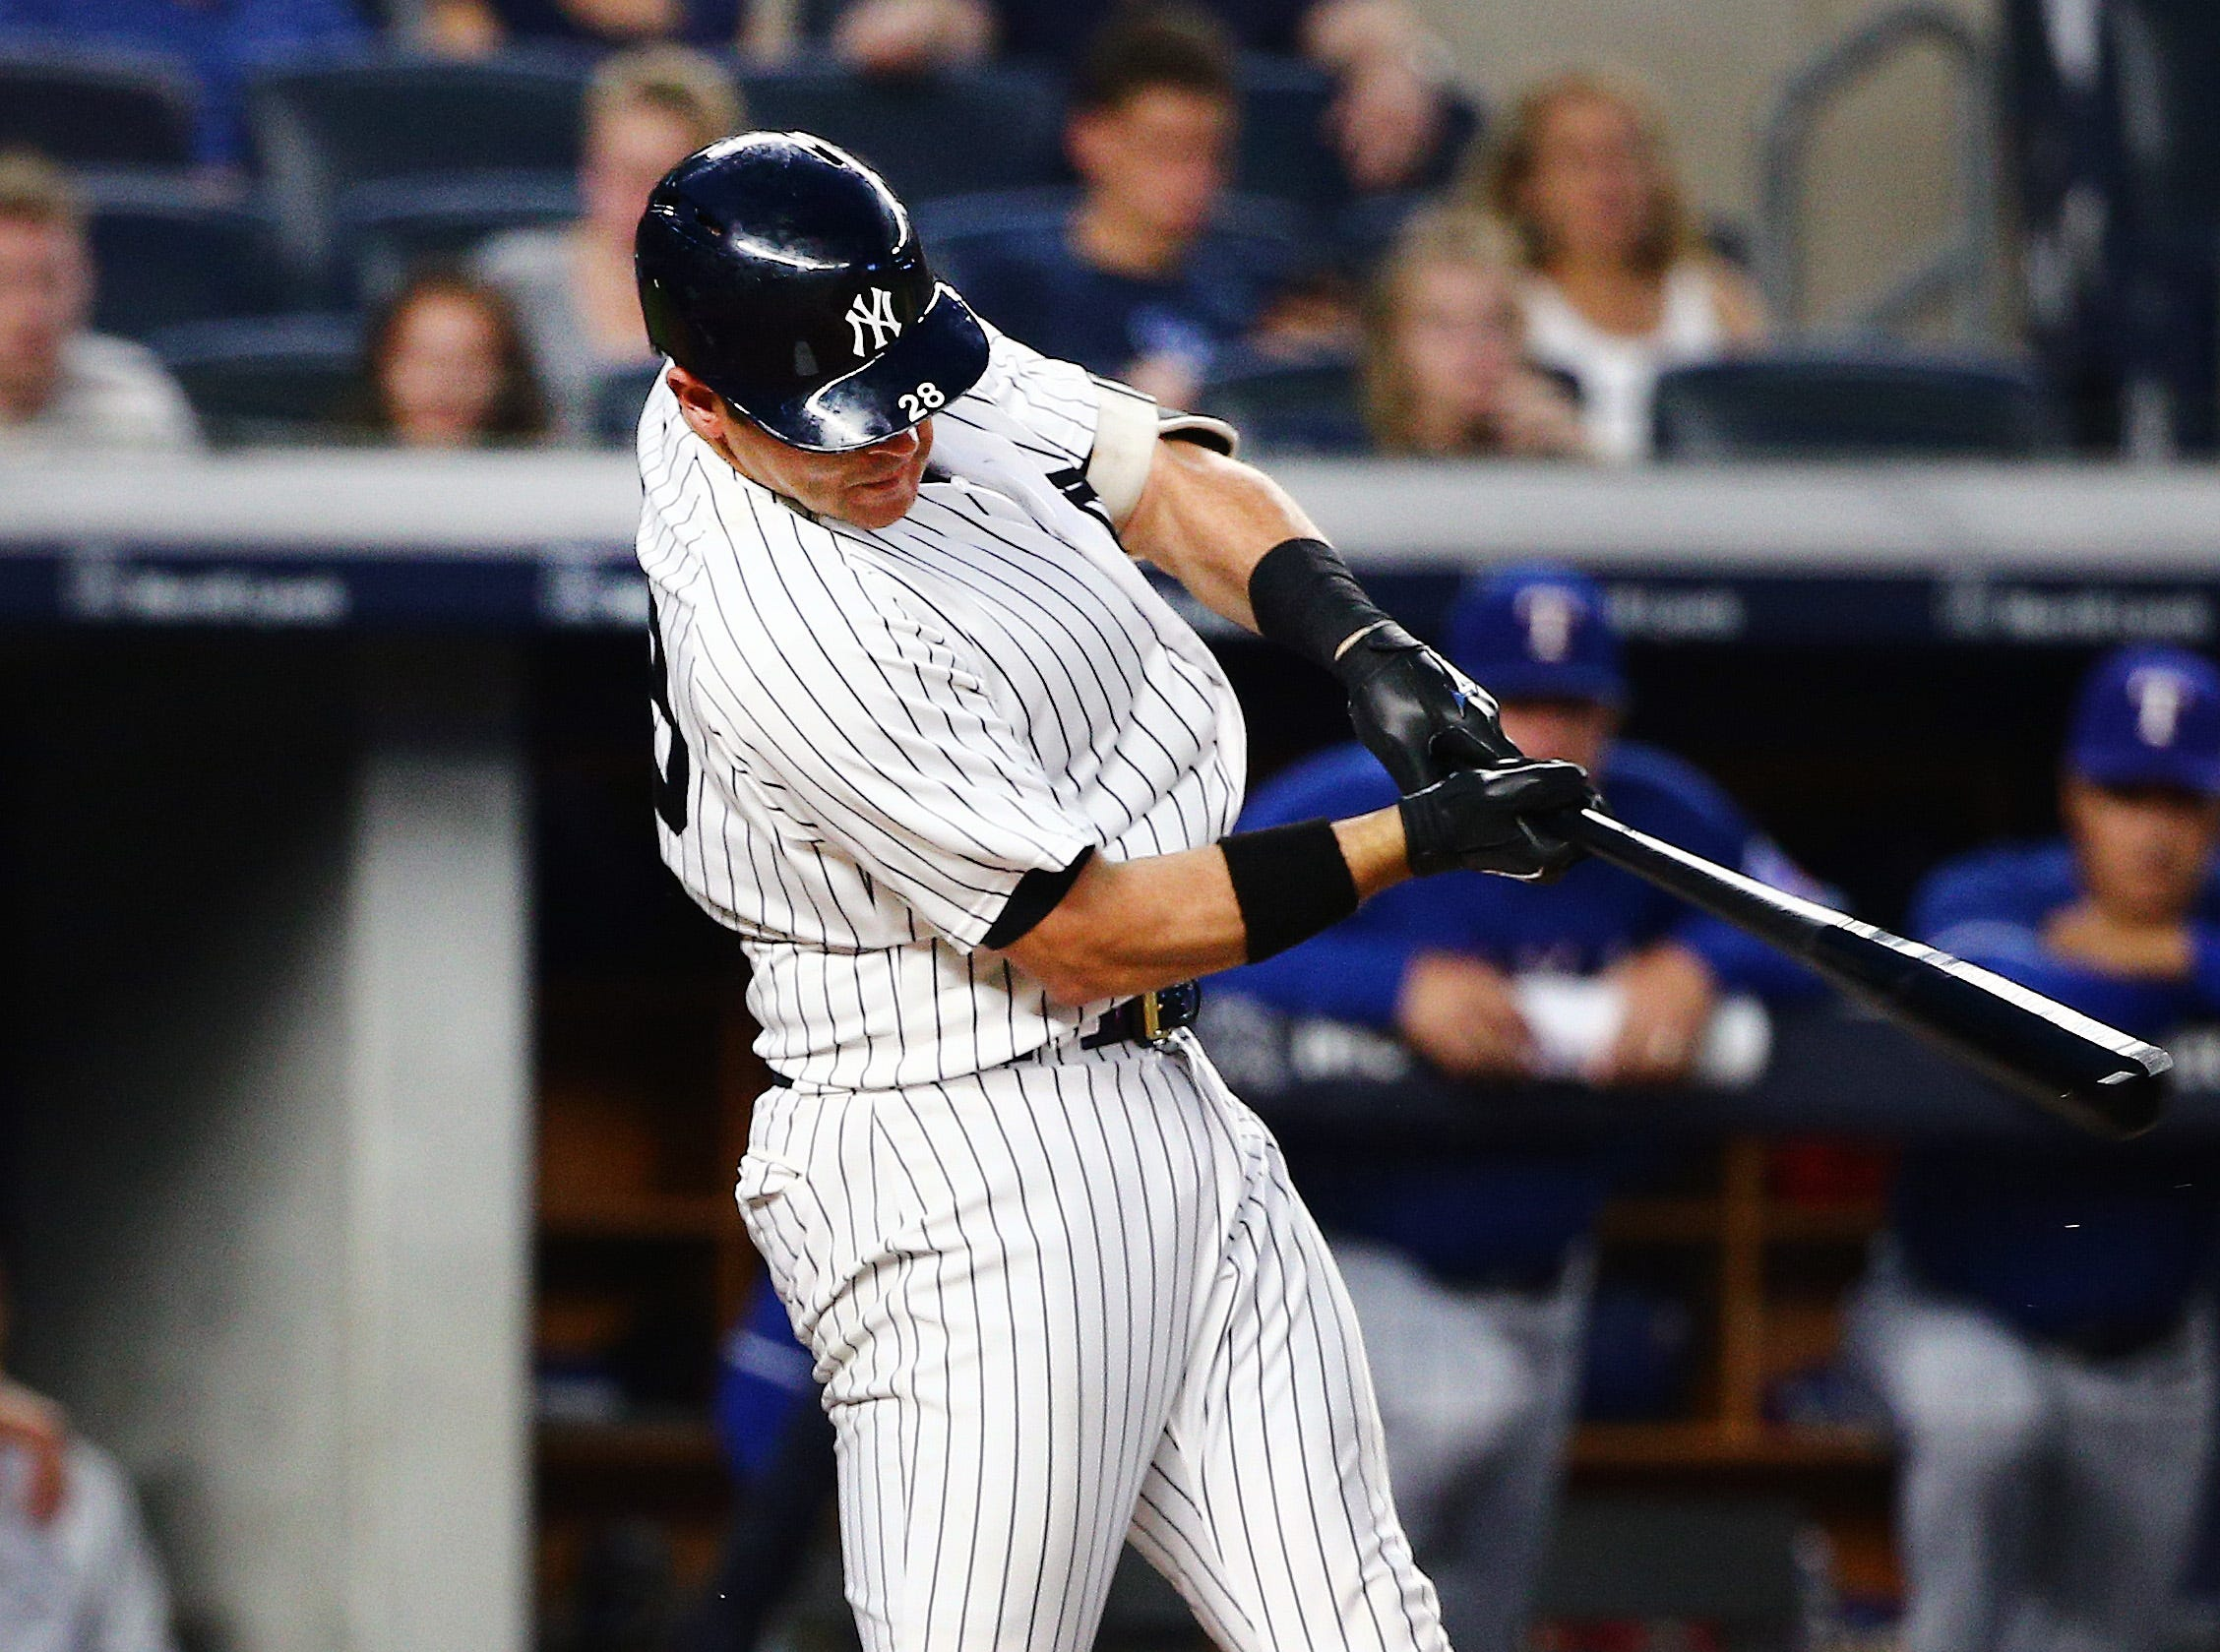 Yankees catcher Austin Romine (28) singles against the Texas Rangers during the third inning at Yankee Stadium.